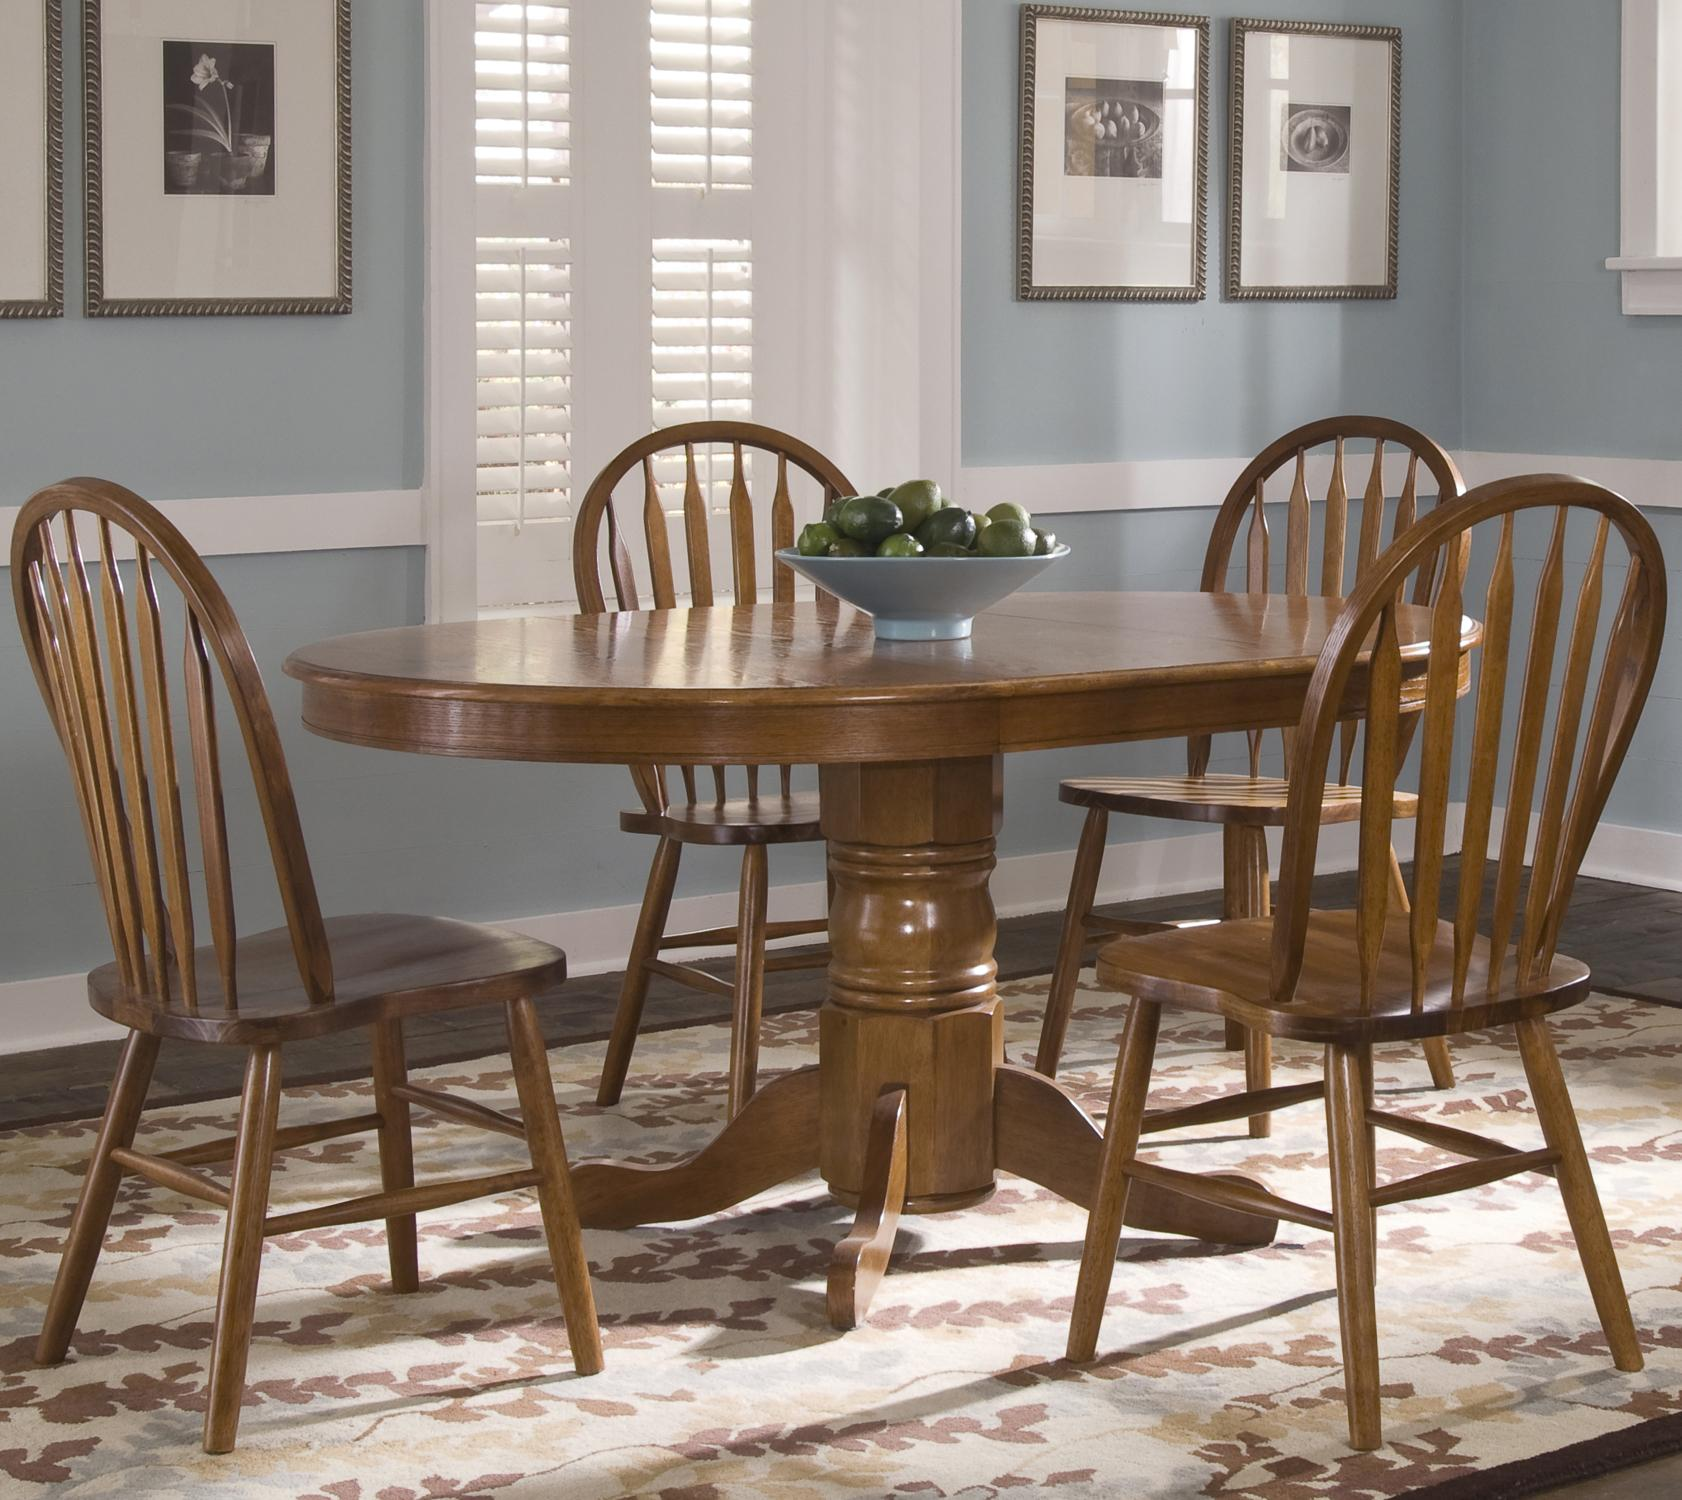 oval pedestal dinner table w/ 4 windsor side chairsliberty